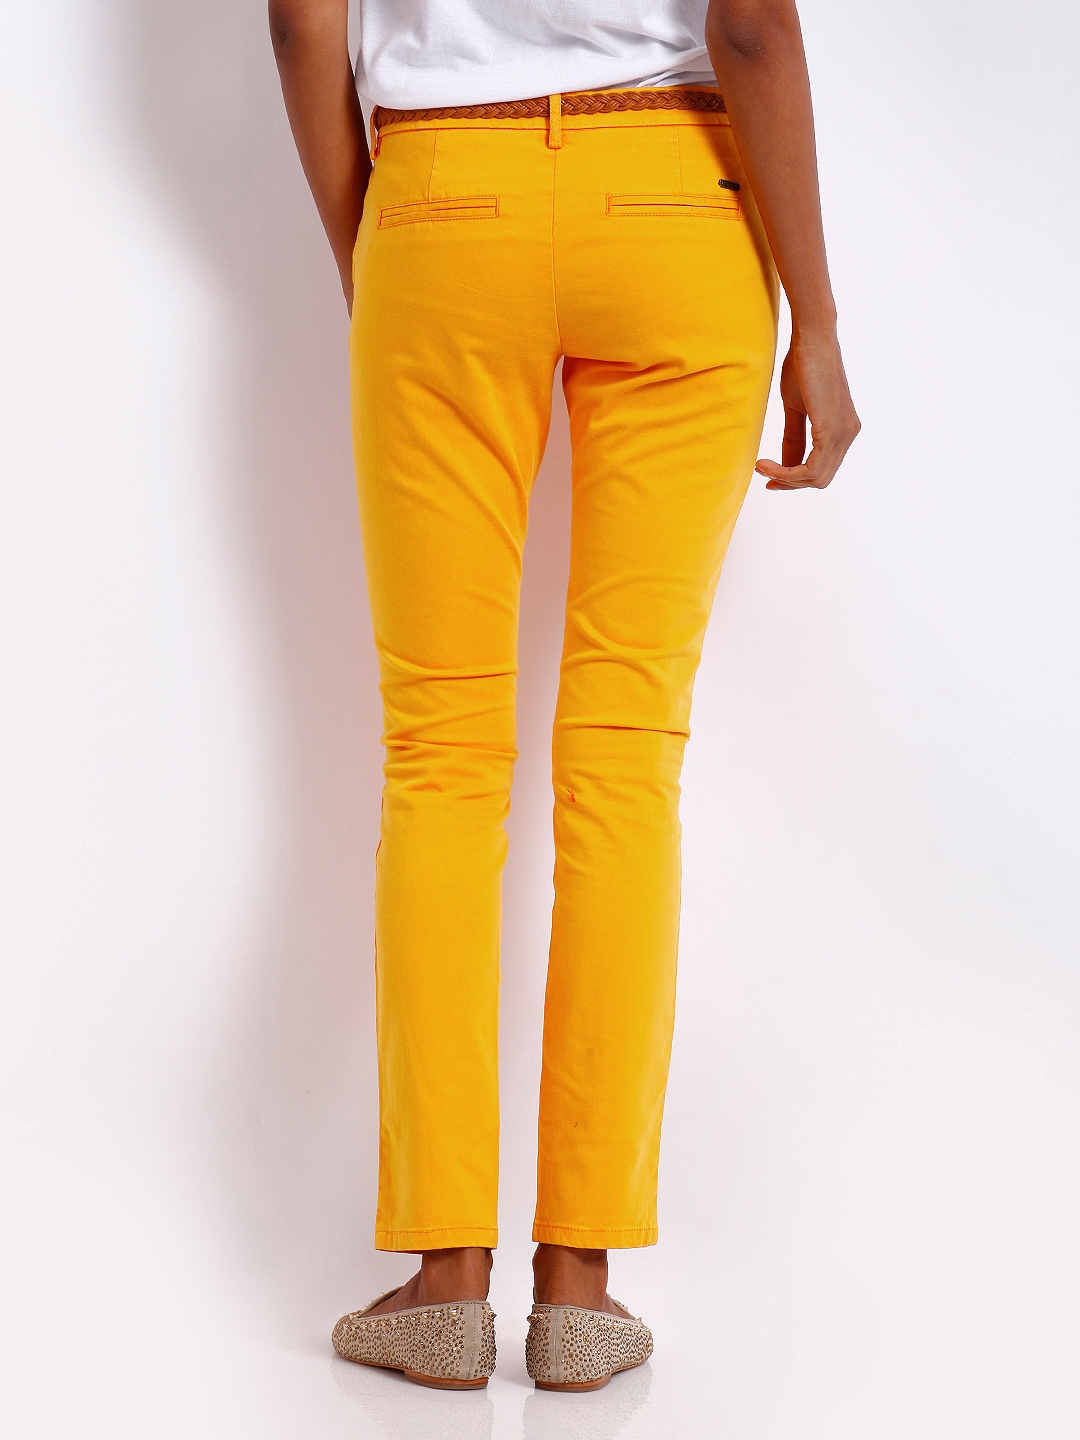 Shop our Collection of Women's Yellow Pants at truedfil3gz.gq for the Latest Designer Brands & Styles. FREE SHIPPING AVAILABLE!